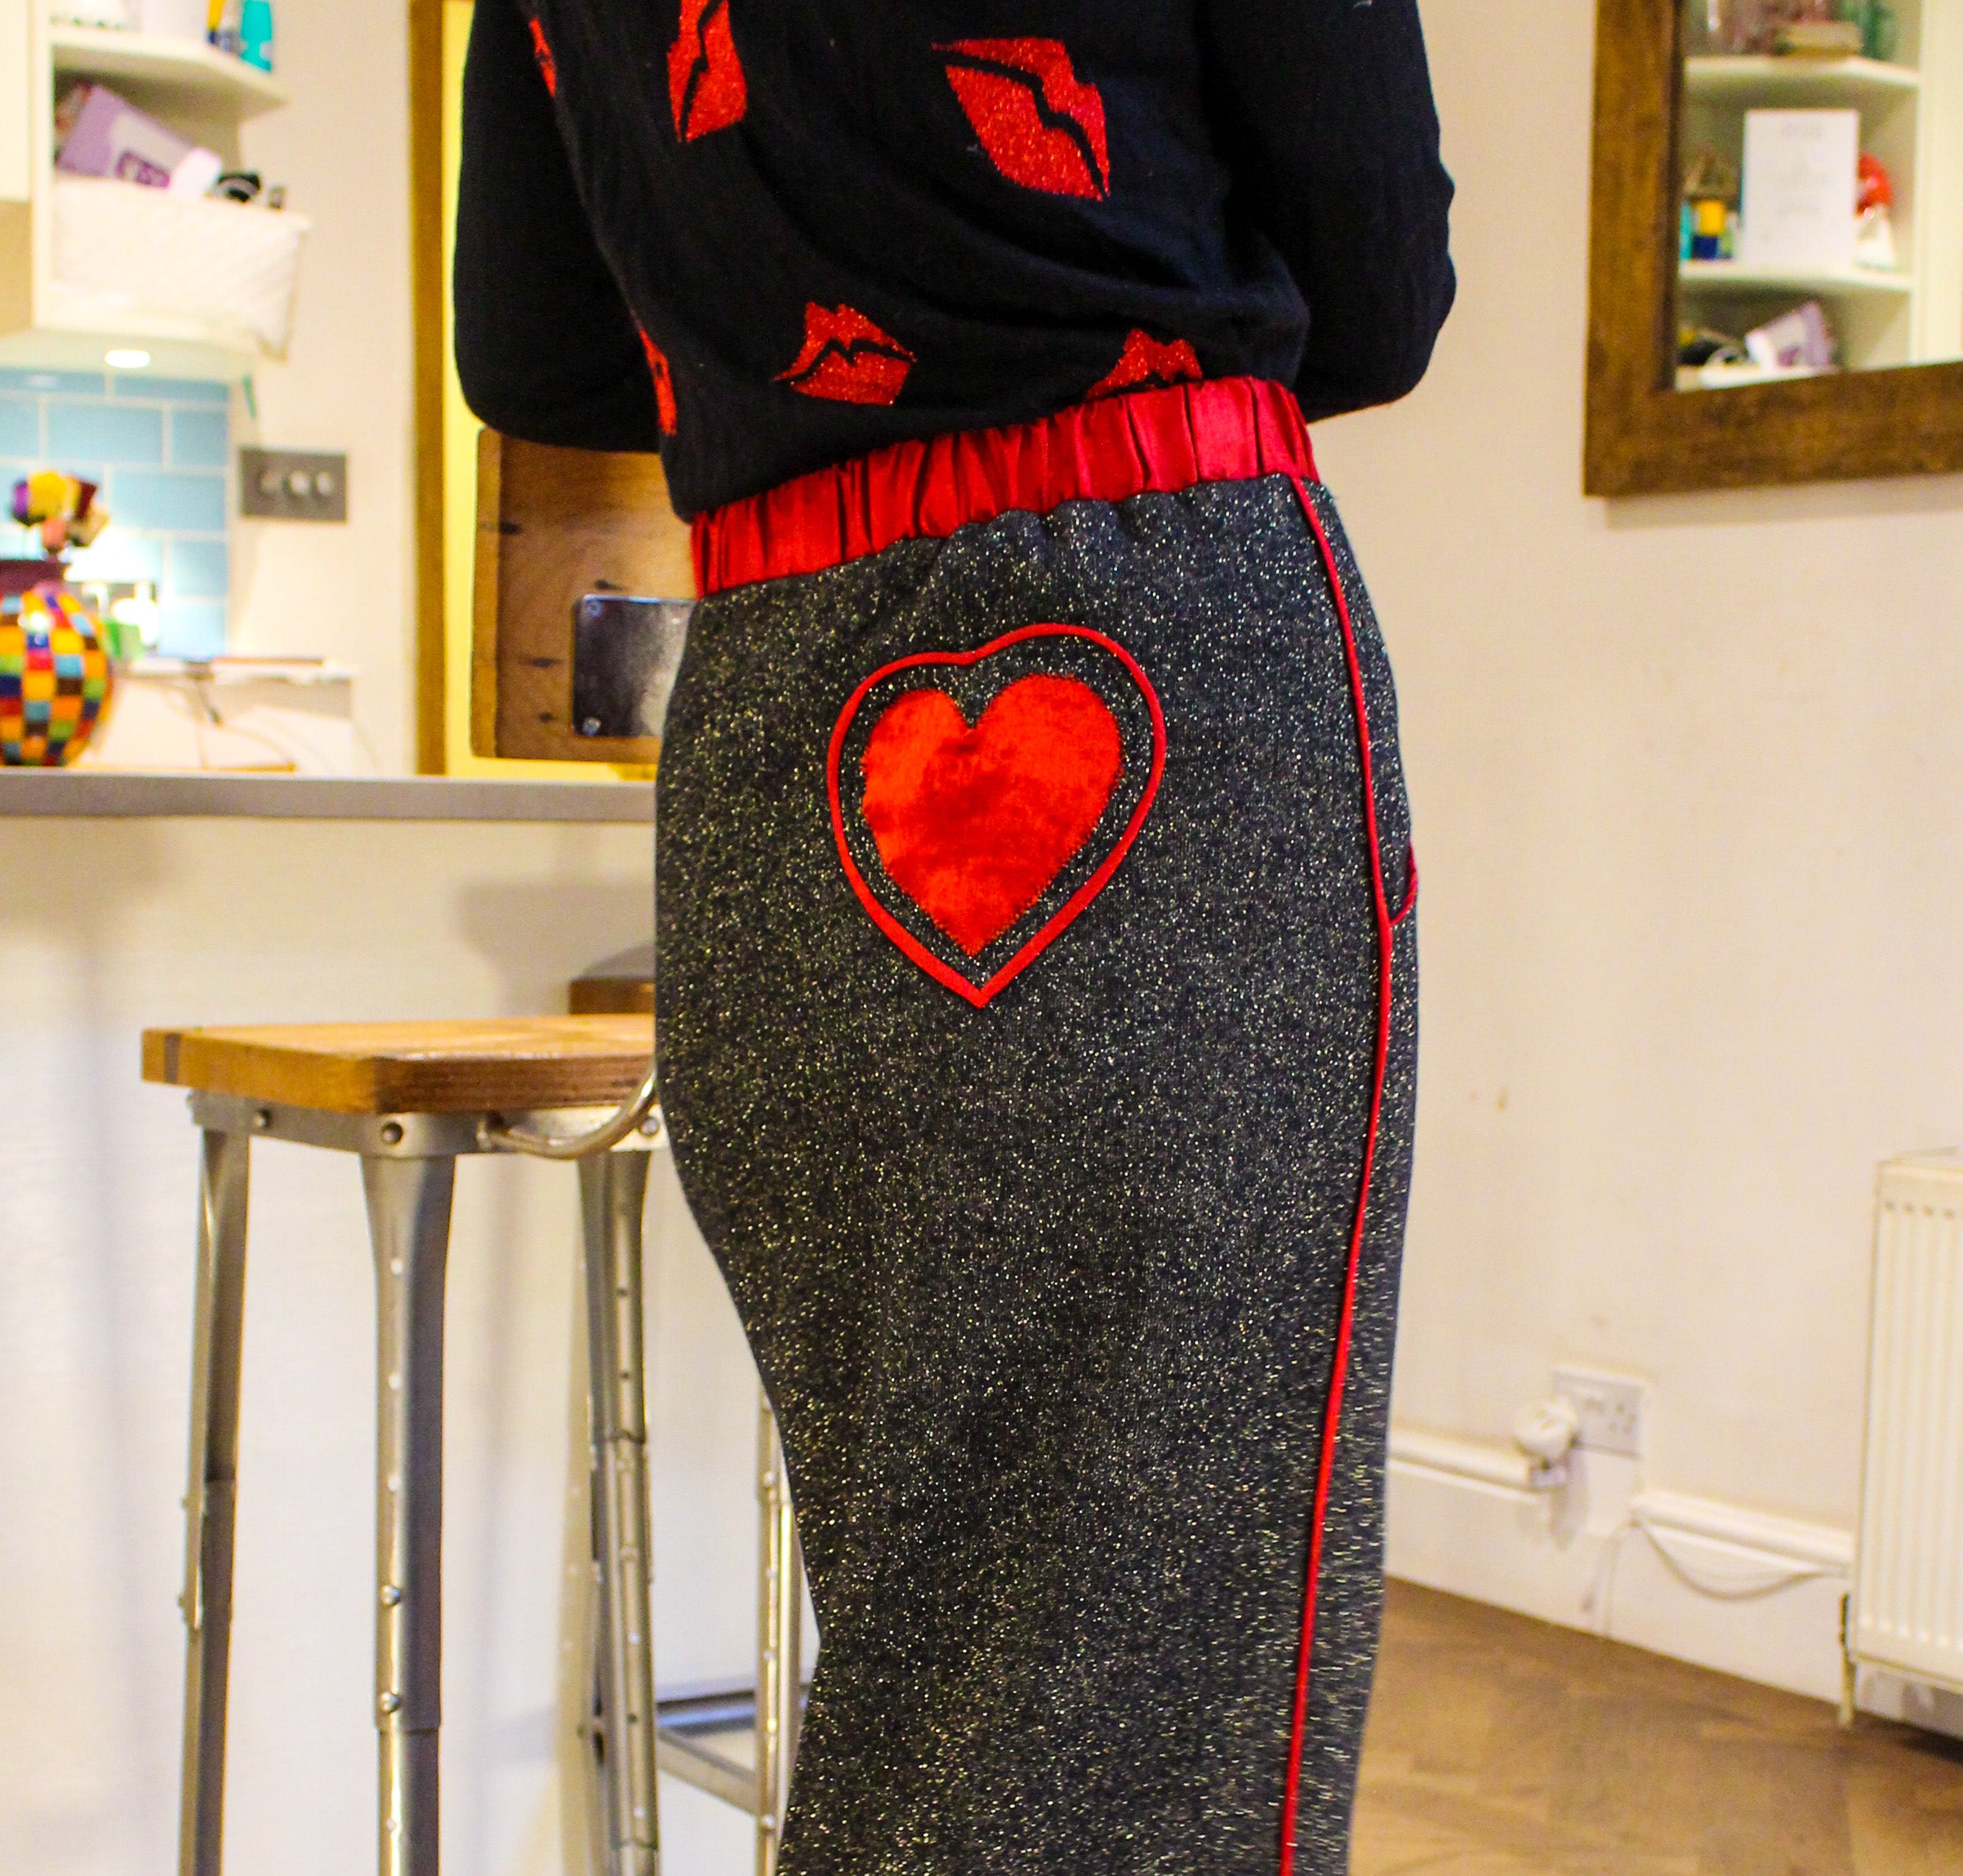 The 'Hygge Heart' Skirt